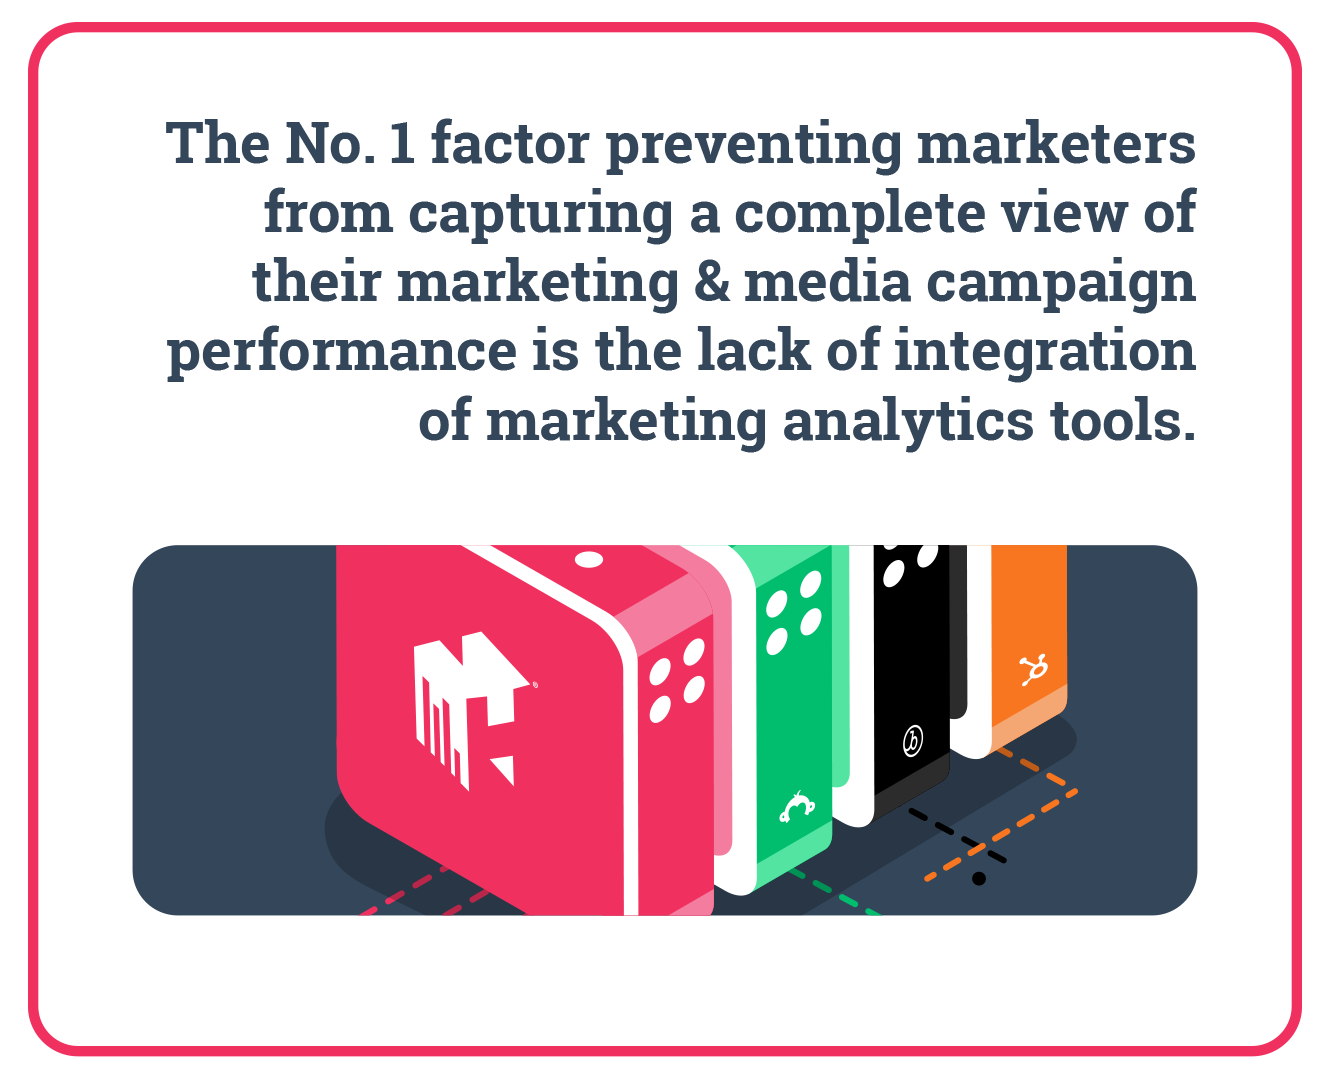 The No1 factor preventing marketers from capturing a complete view of their marketing & media campaign performance is the lack of integration of marketing analytics tools. Data Integration.